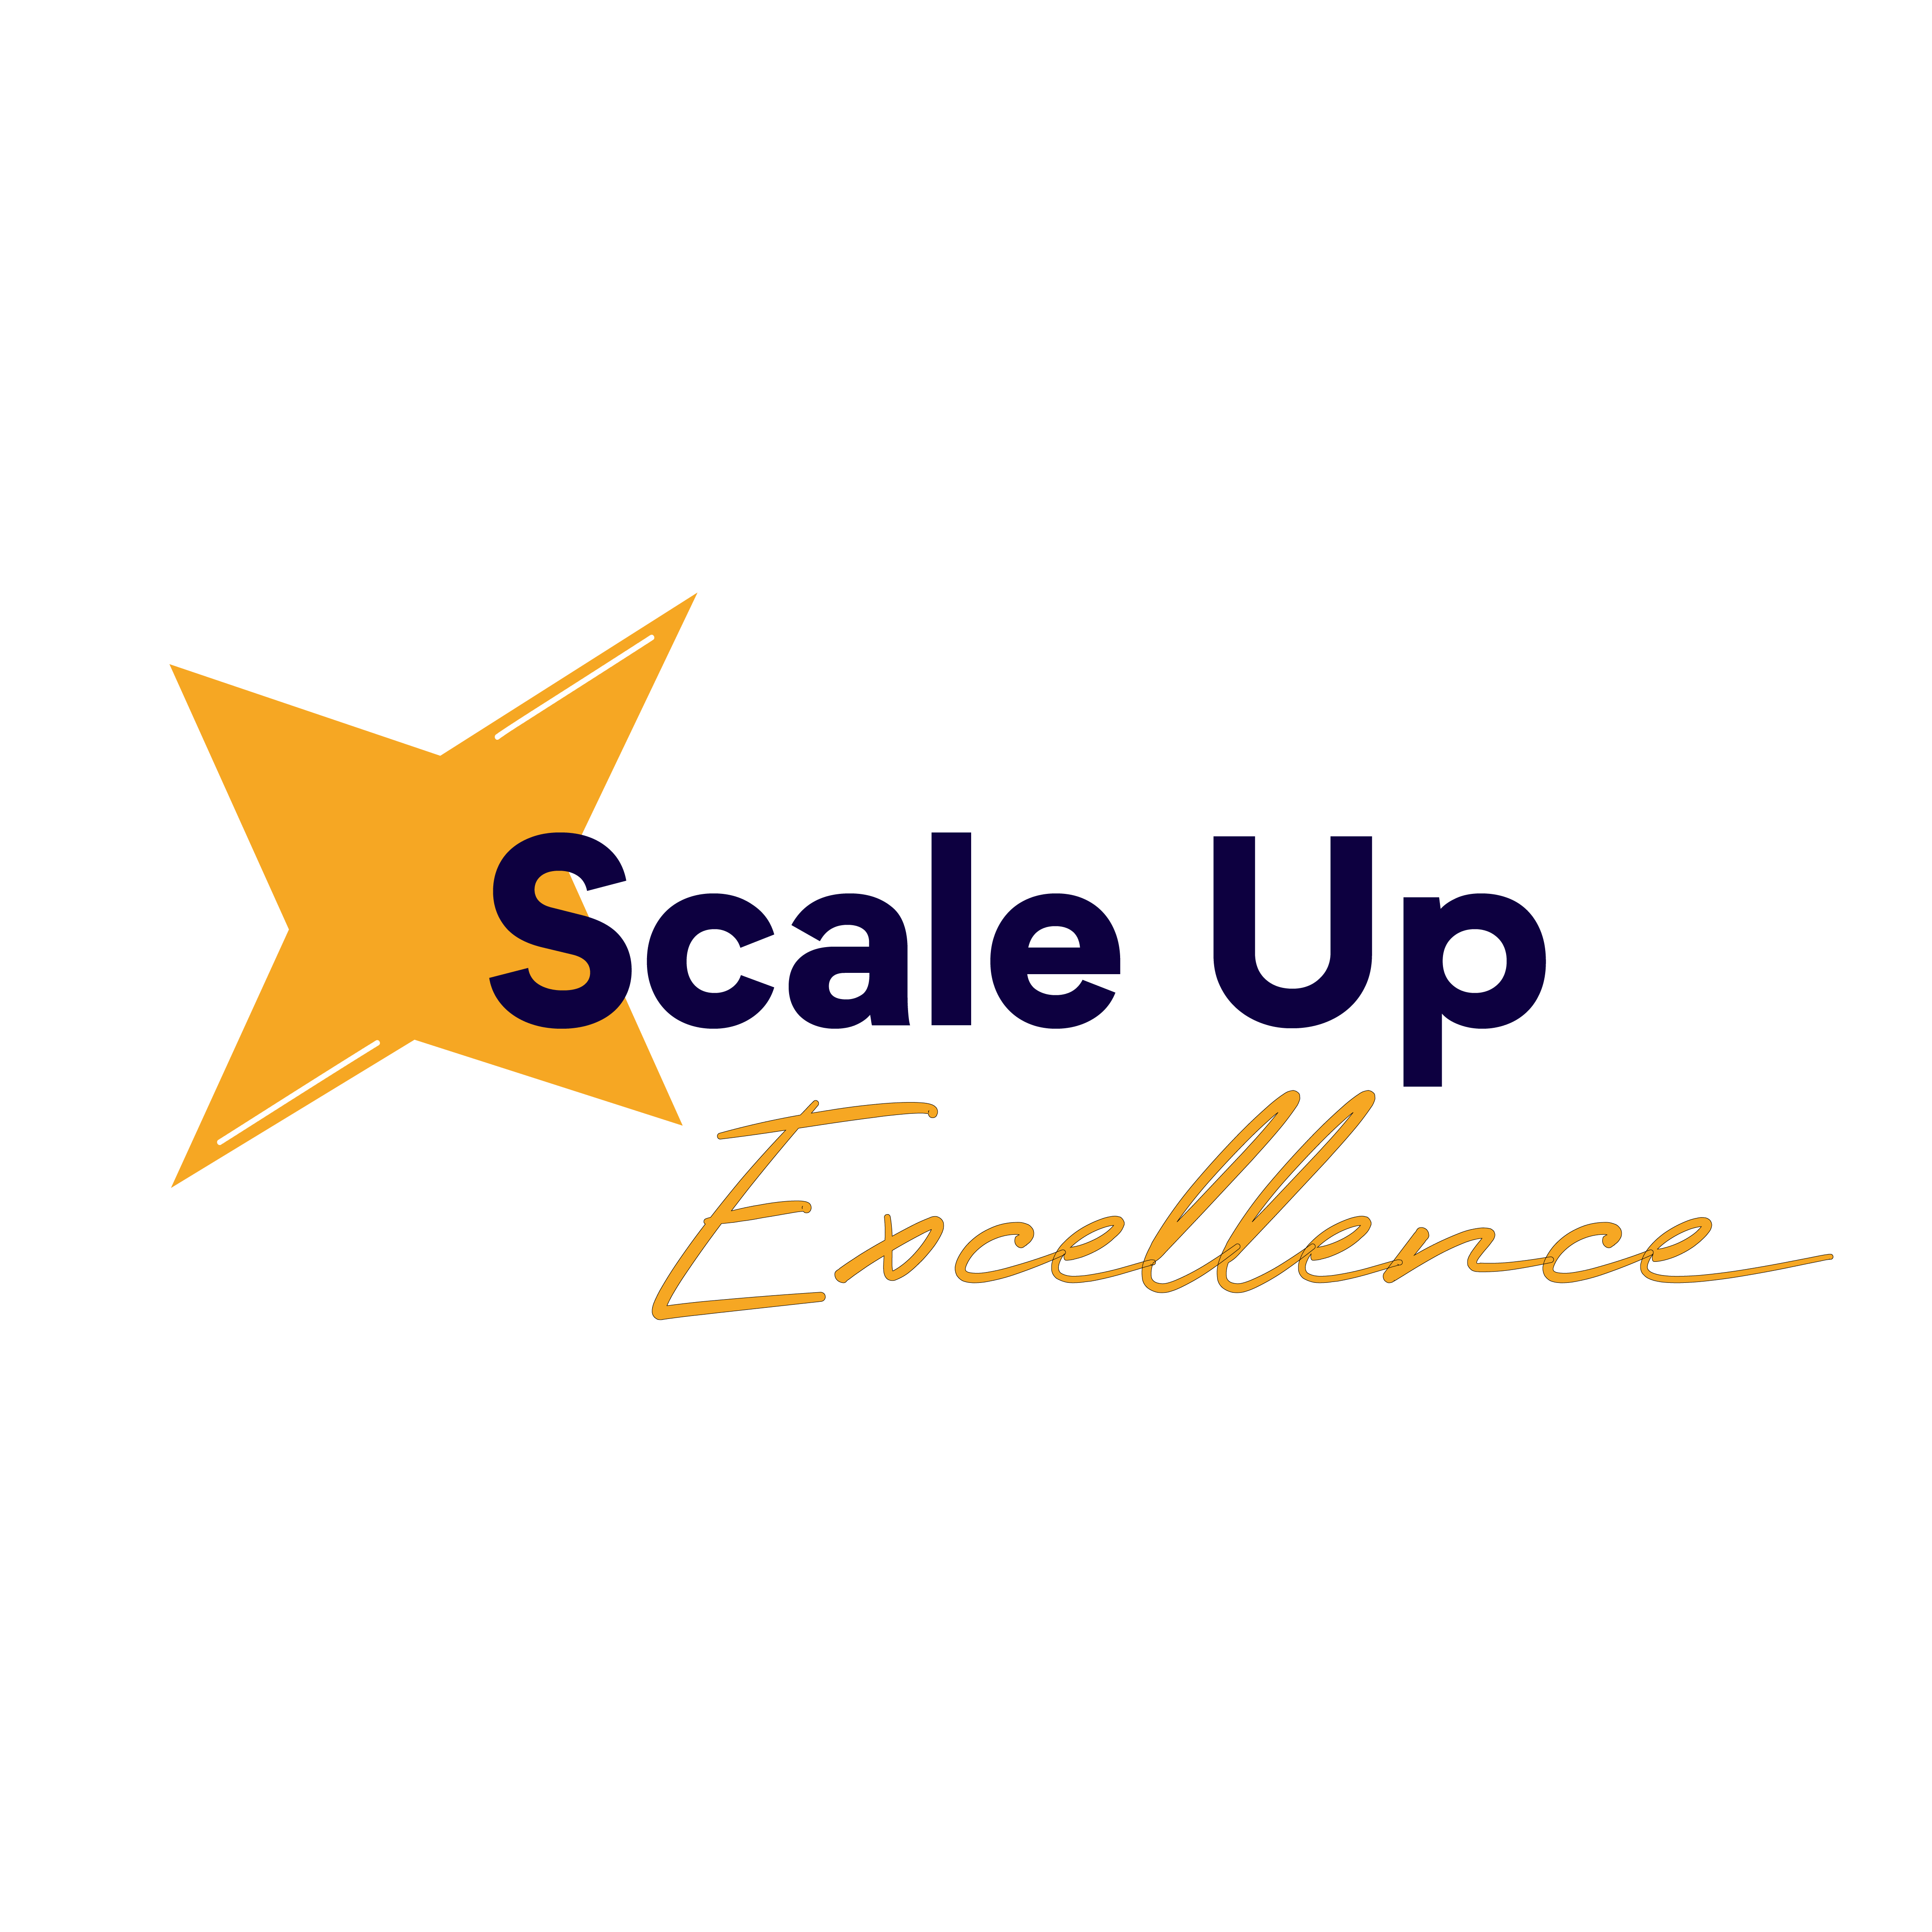 Logo Scale Up Excellence